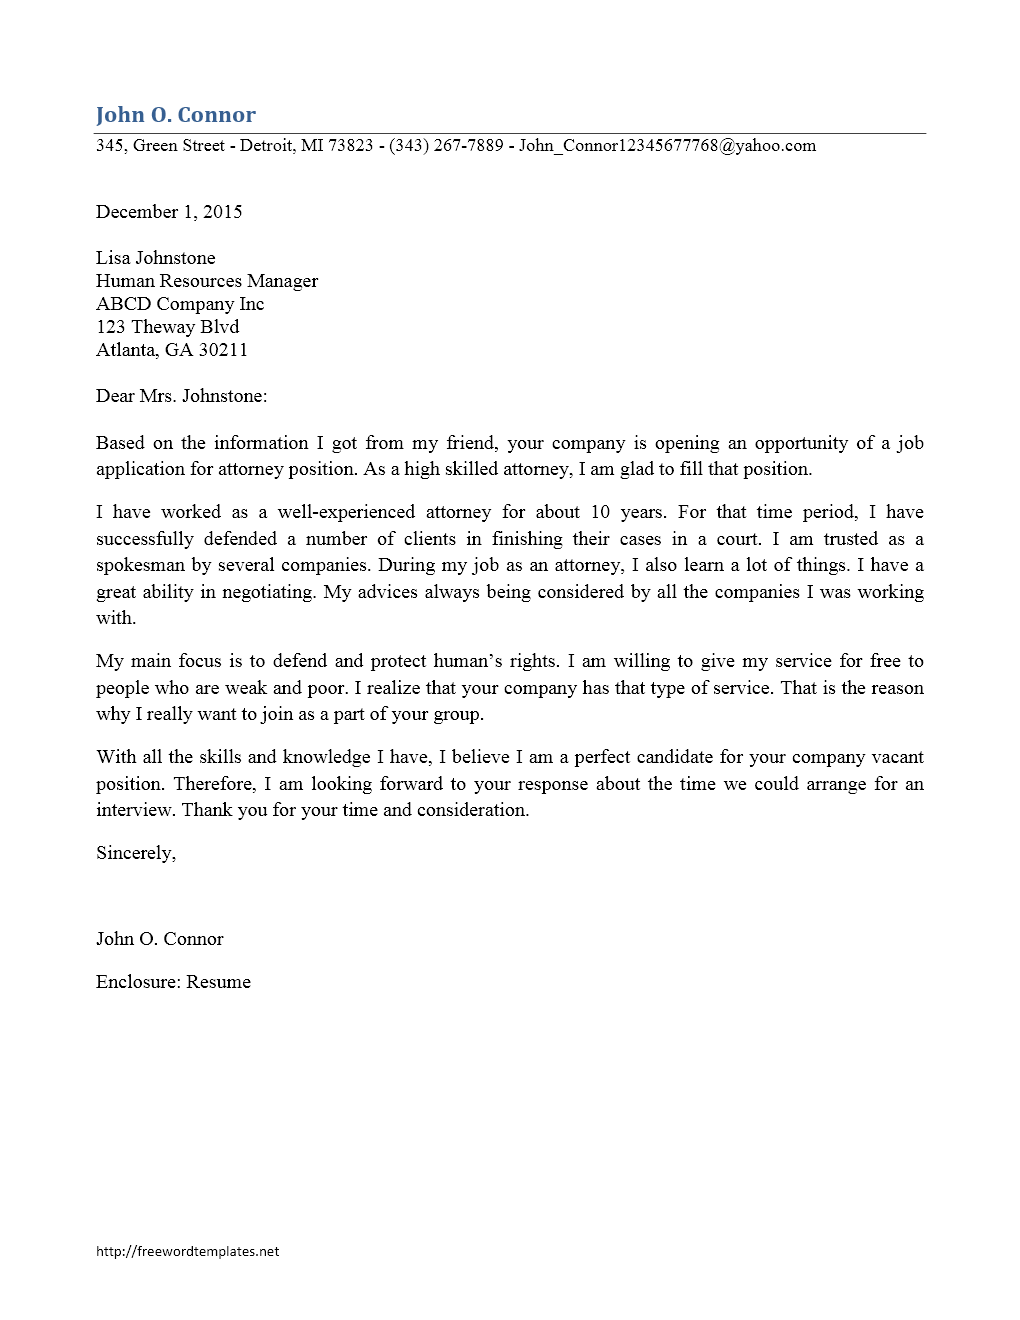 District attorney intern cover letter